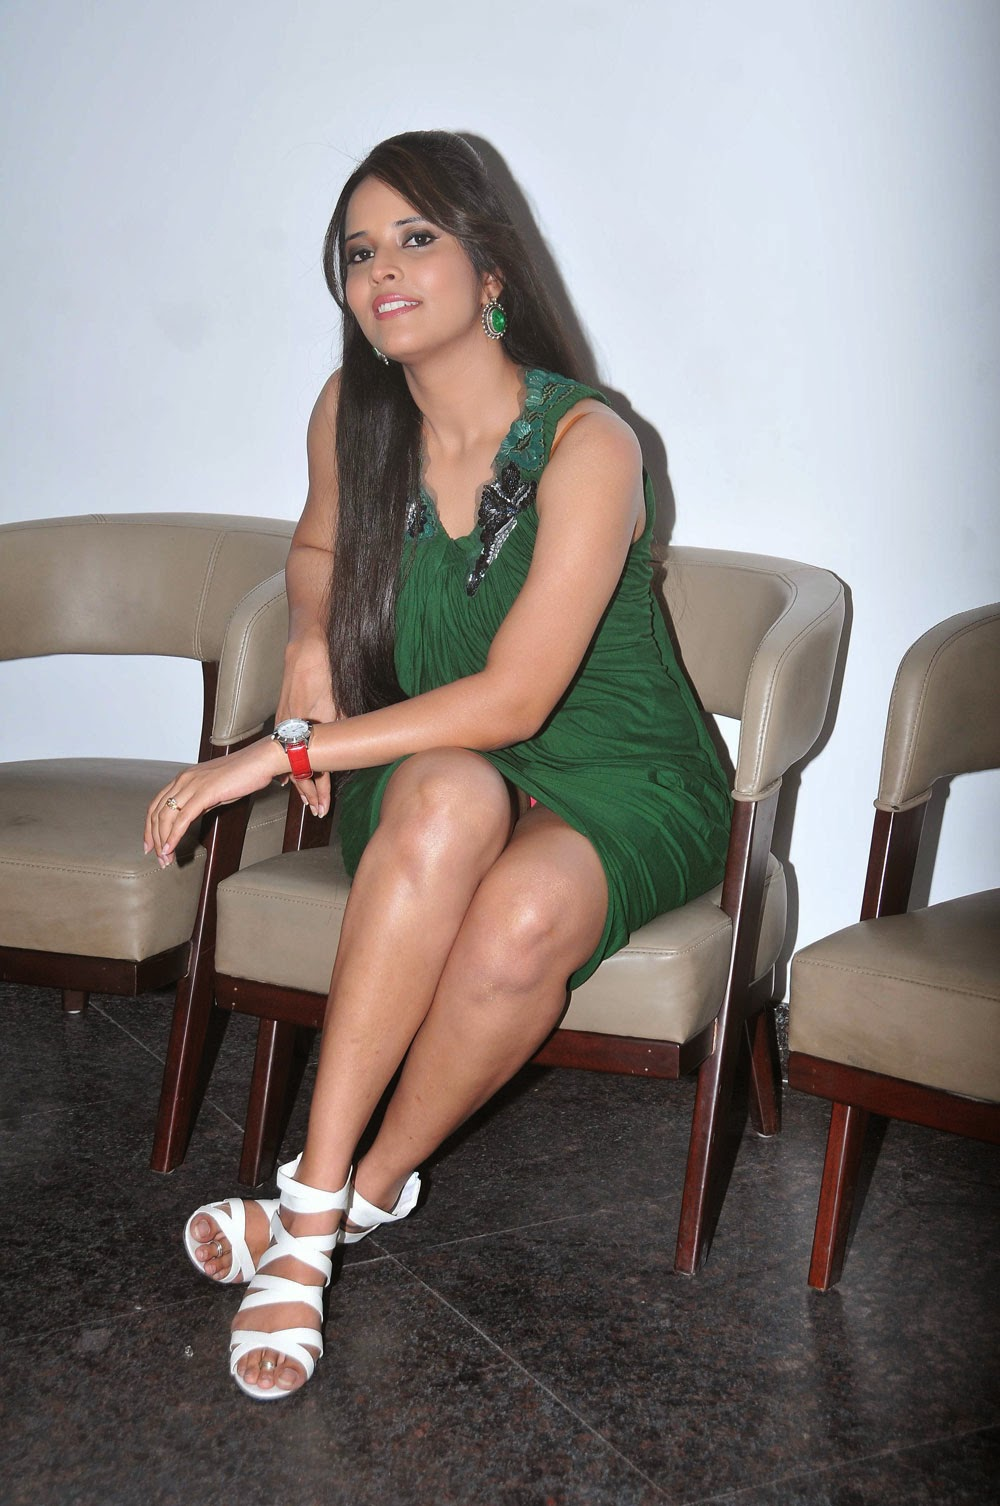 Nude Pics Of Tv Actresses